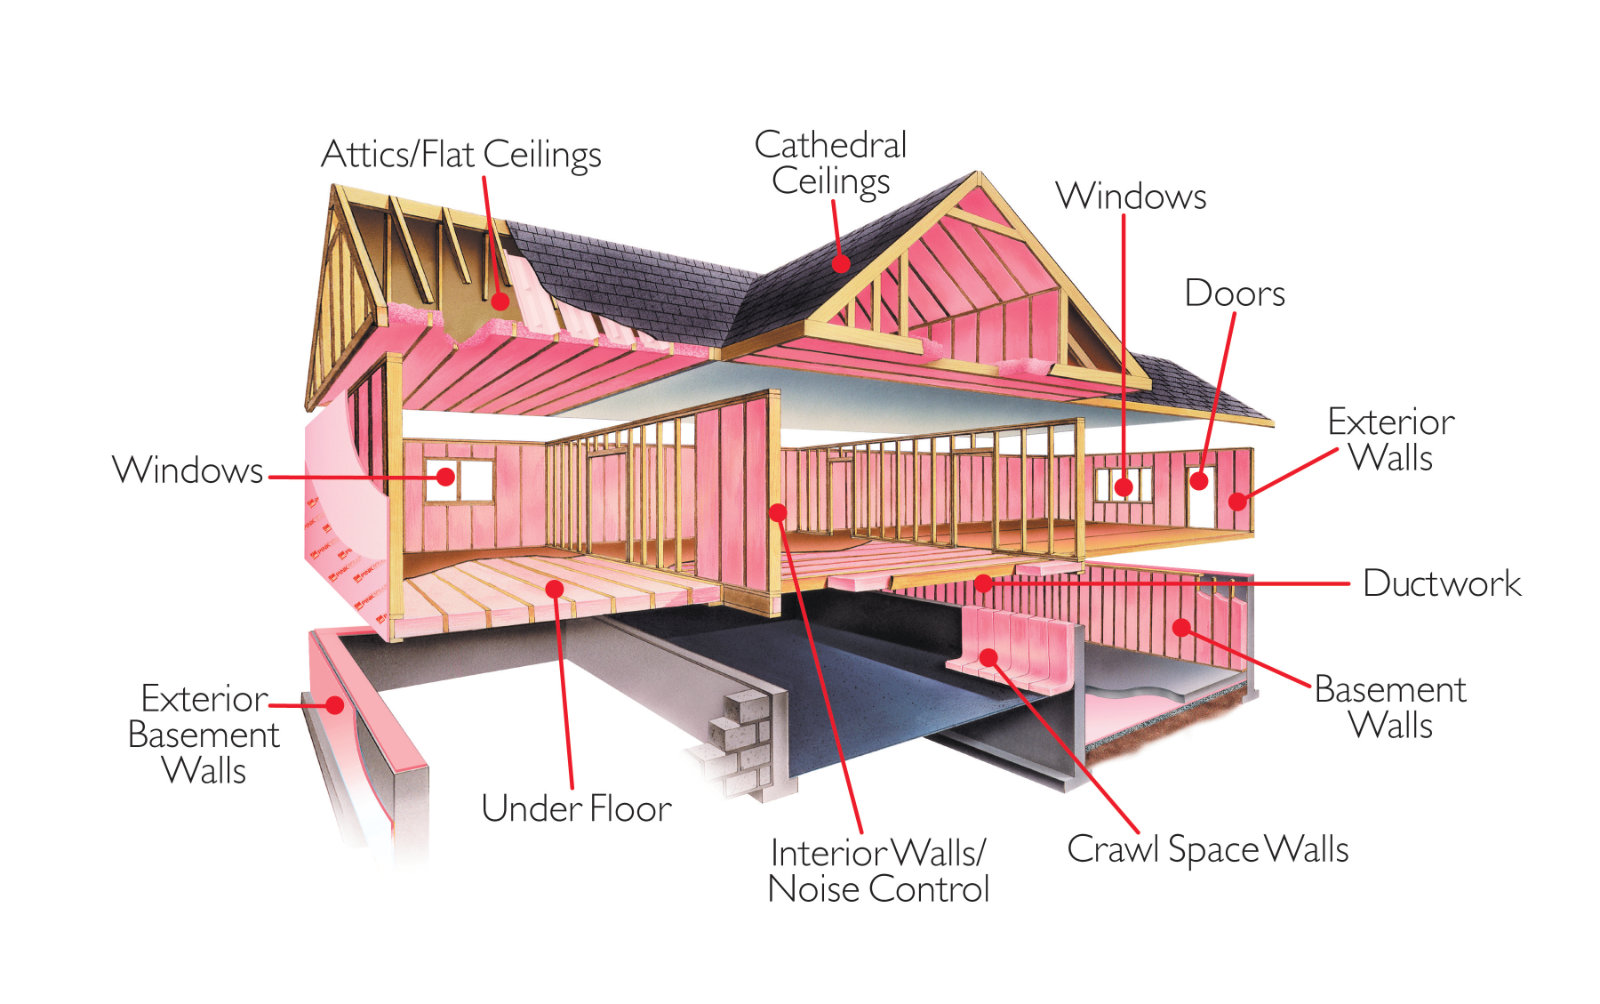 Certified Energy Expert We Understand The Science Behind Building Envelope So You Can Turn To Us Learn More About Insulating Your Home